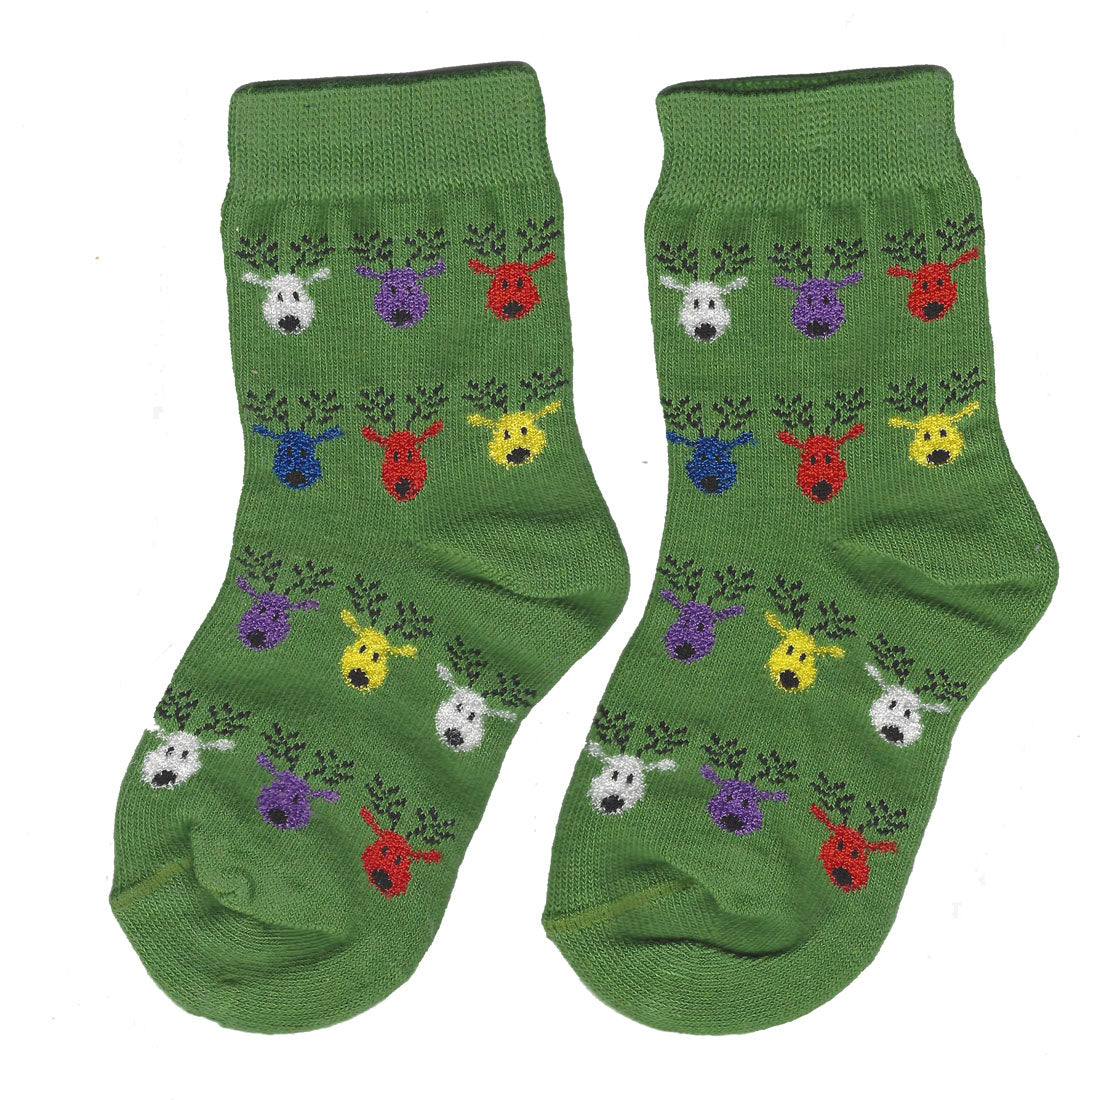 Boys Reindeer Socks by Country Kids